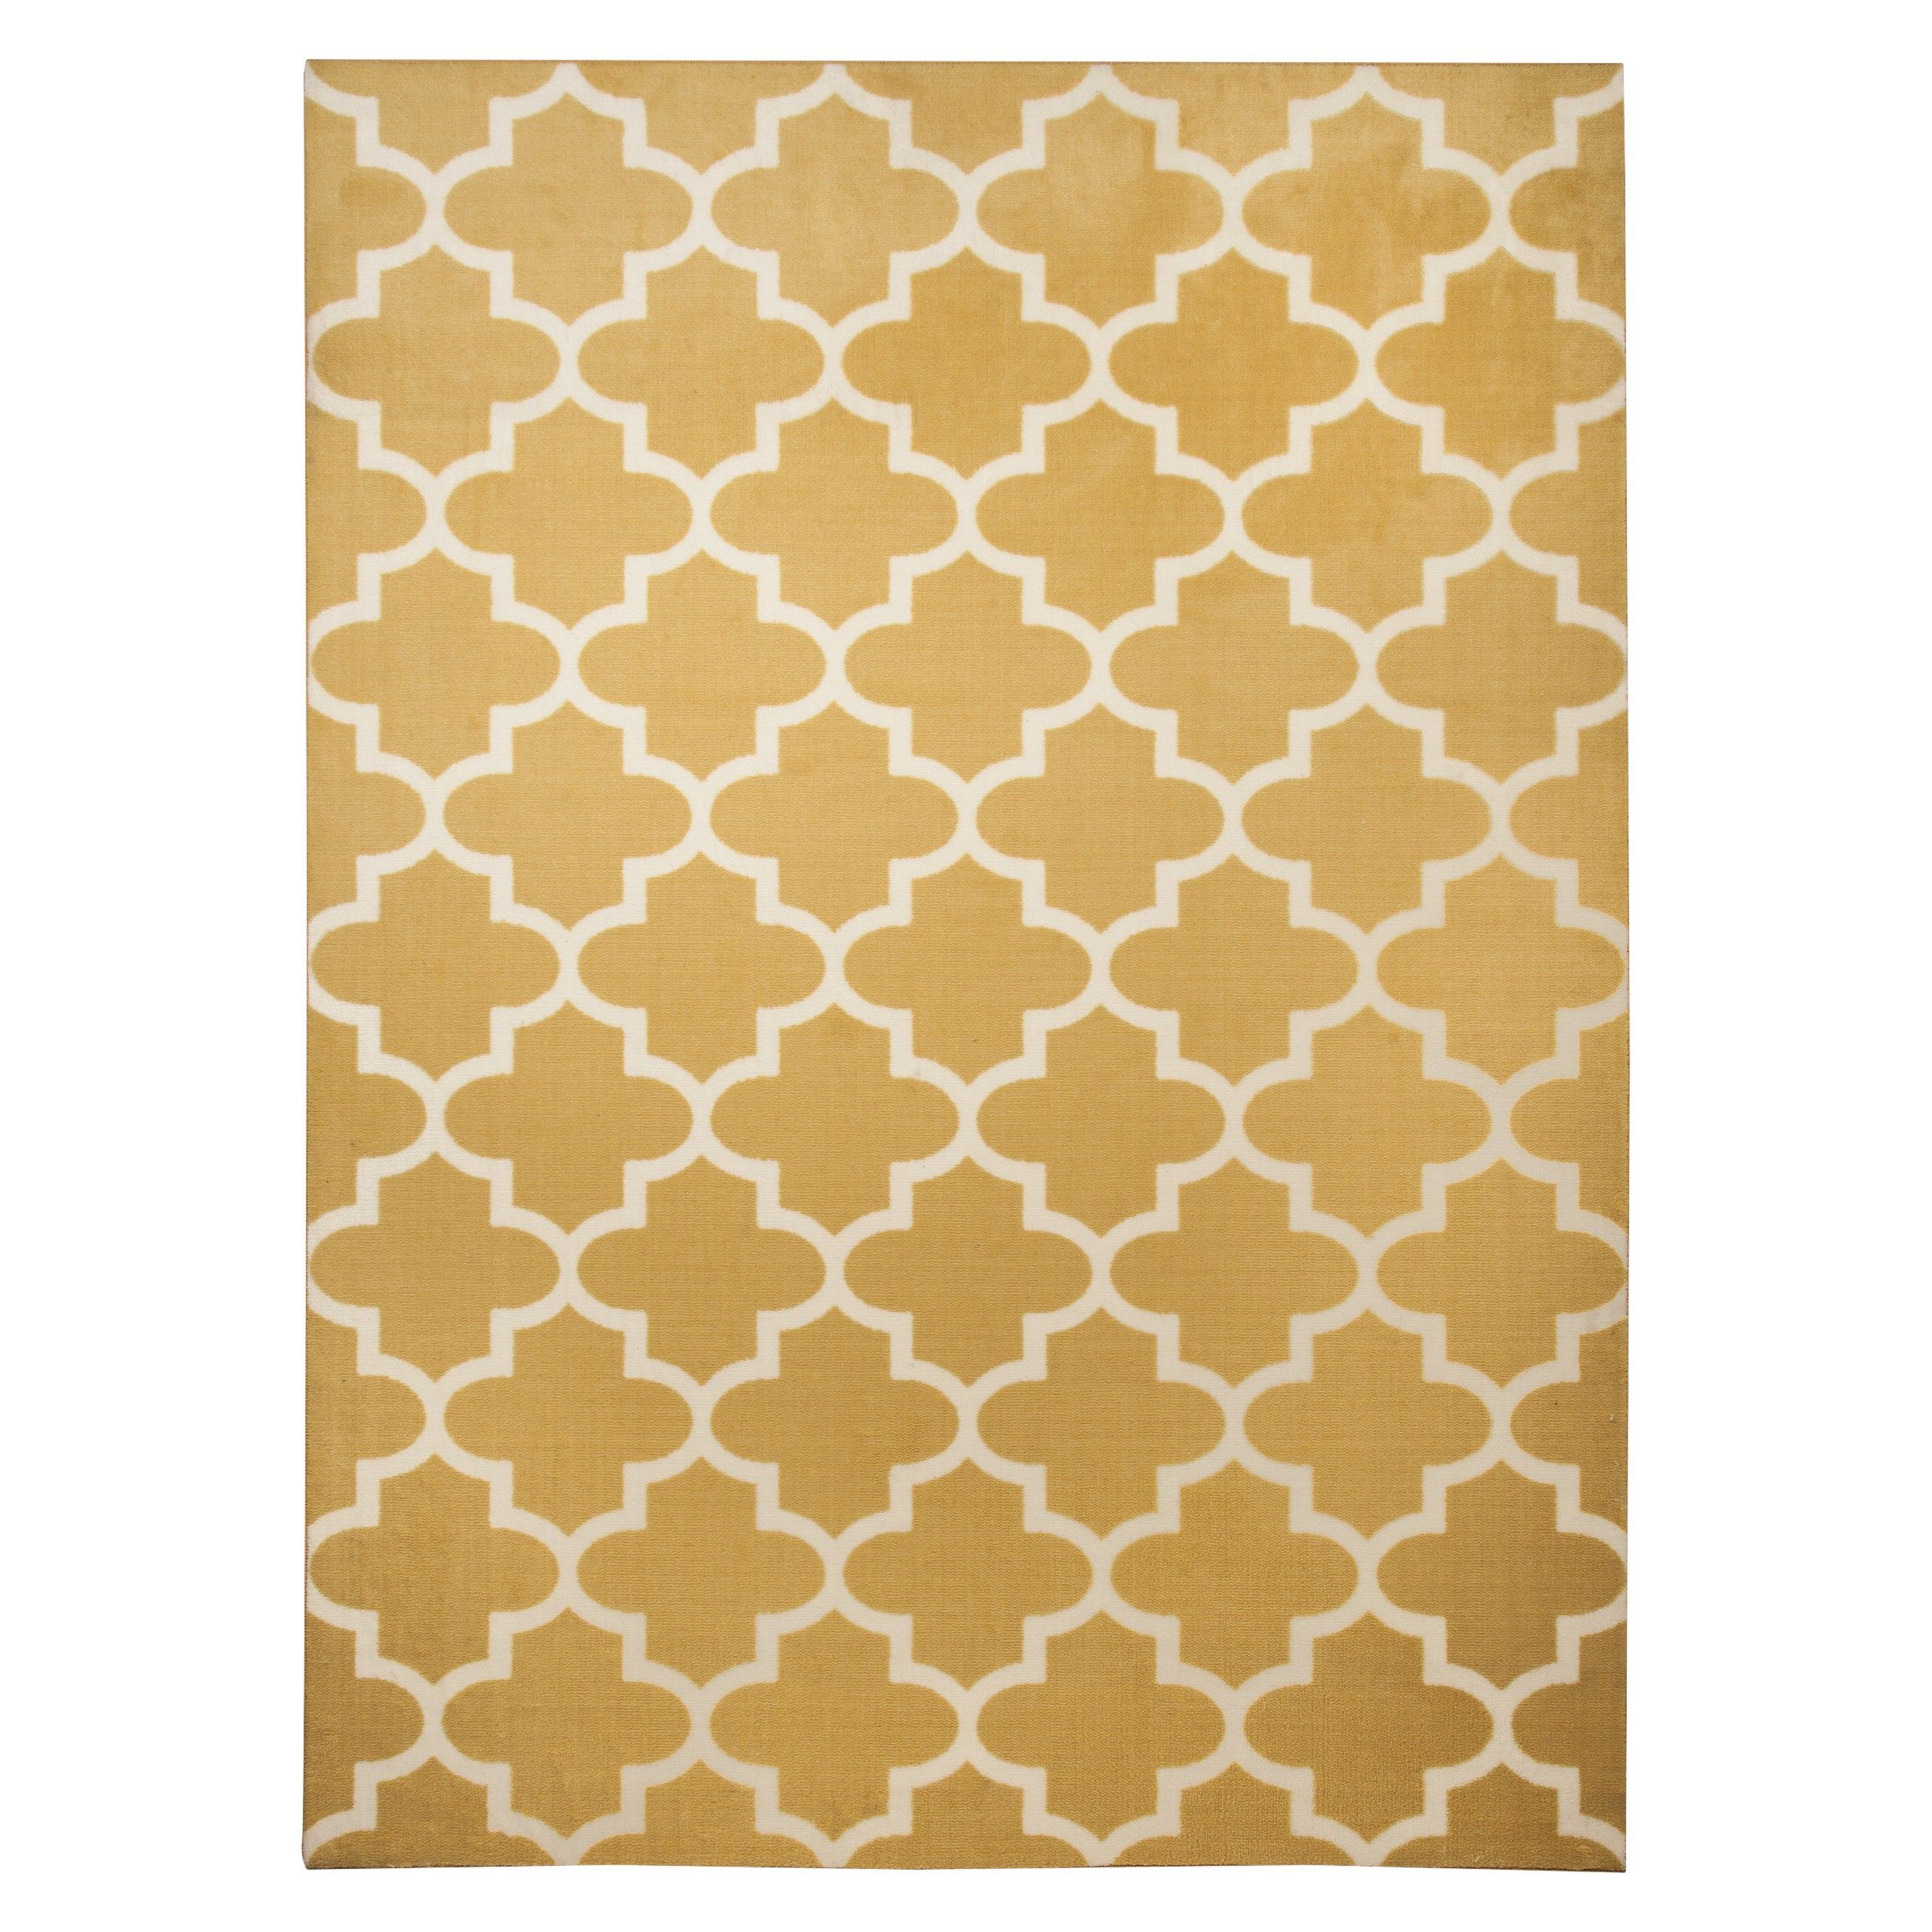 Maples Fretwork Rug Target This Looks So Good Against Our Hardwood Floors Yellow Ruggray